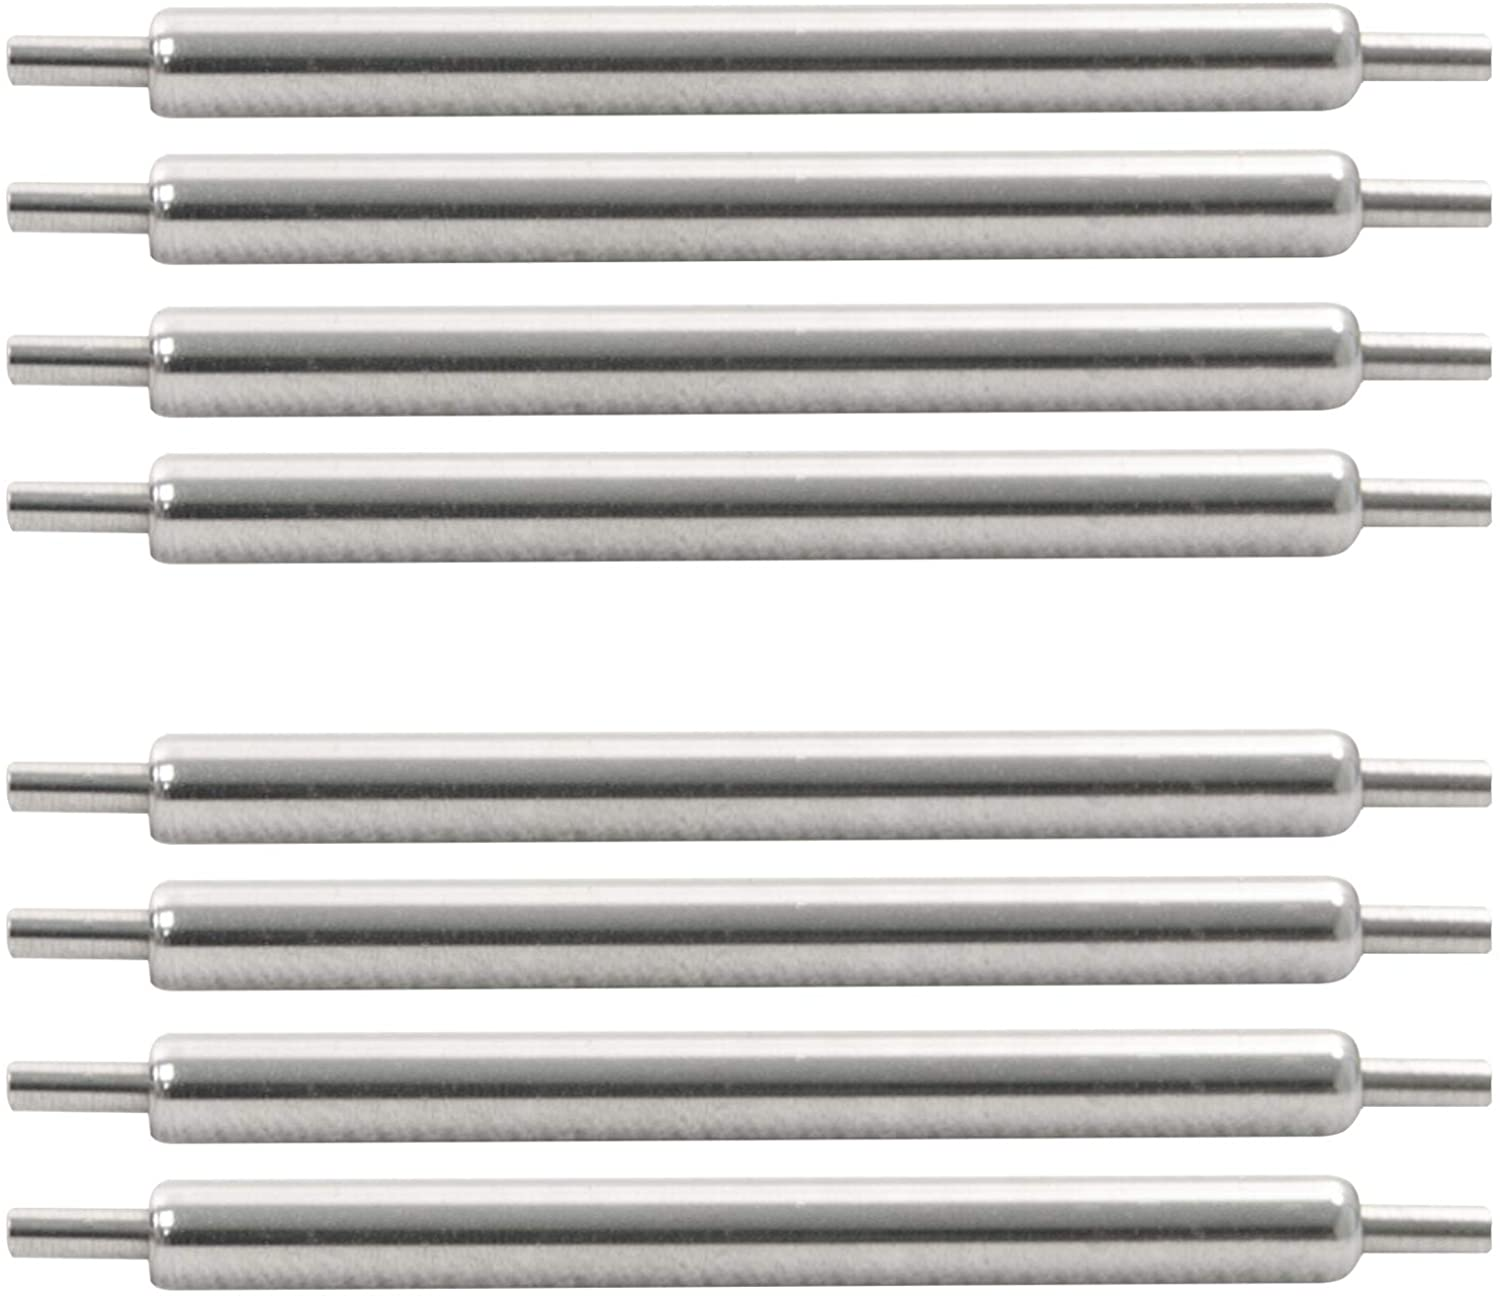 Marathon Watch Swiss Made Stainless Steel Shoulderless Spring Bars - Available in 18mm, 20mm, and 22mm